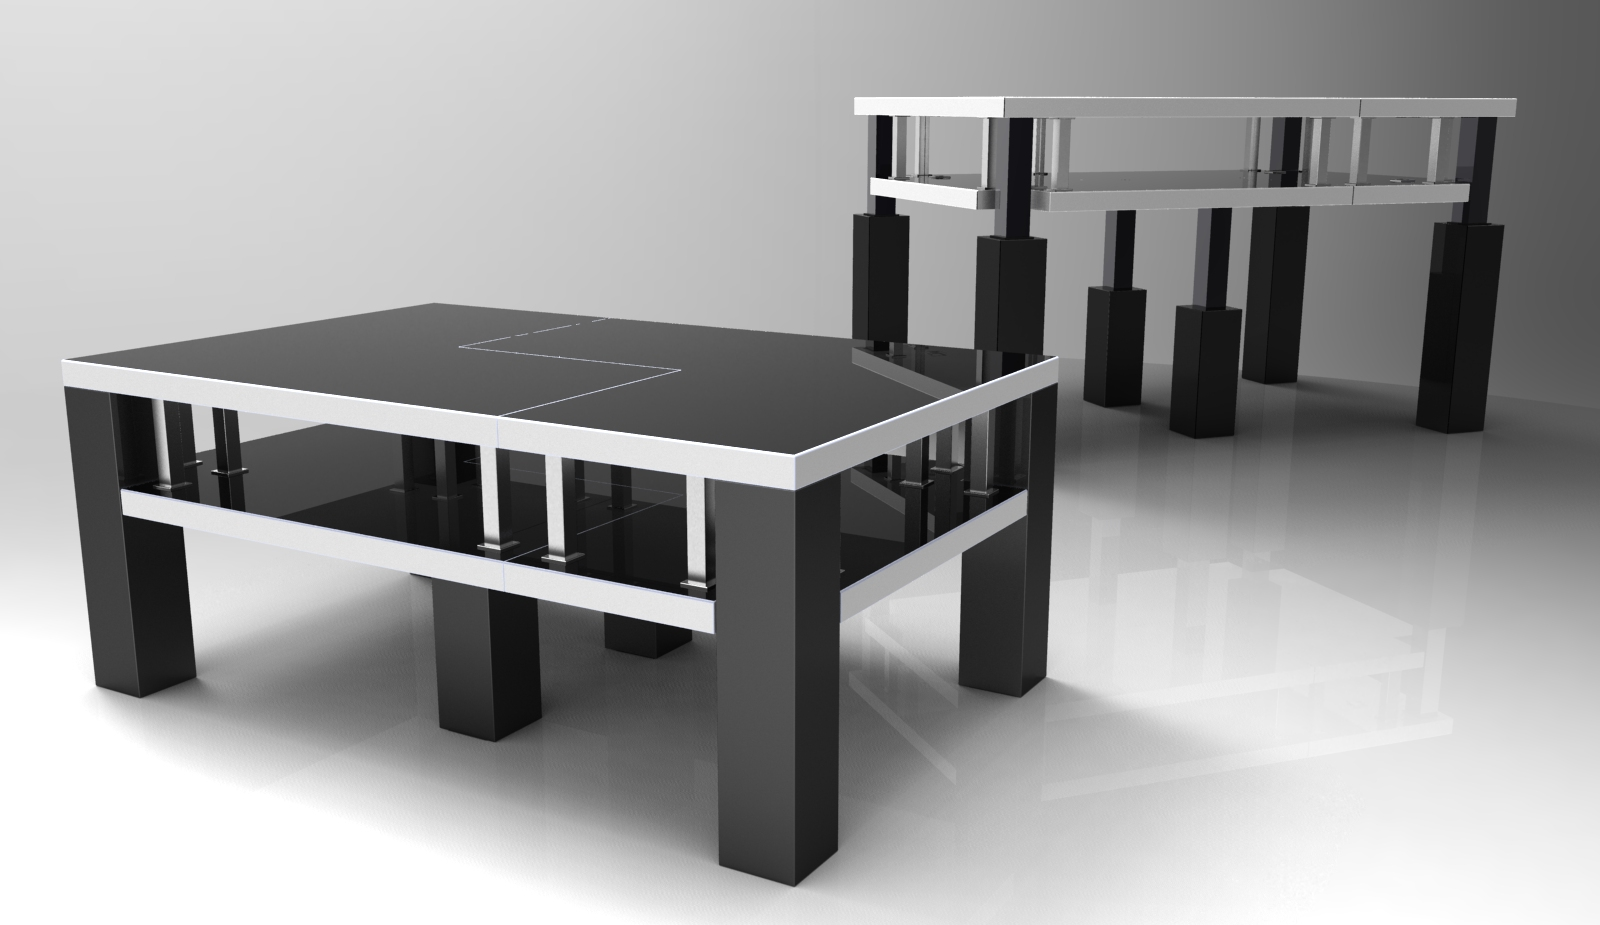 Tridesk Space Saving Furniture By Ferman Vong At